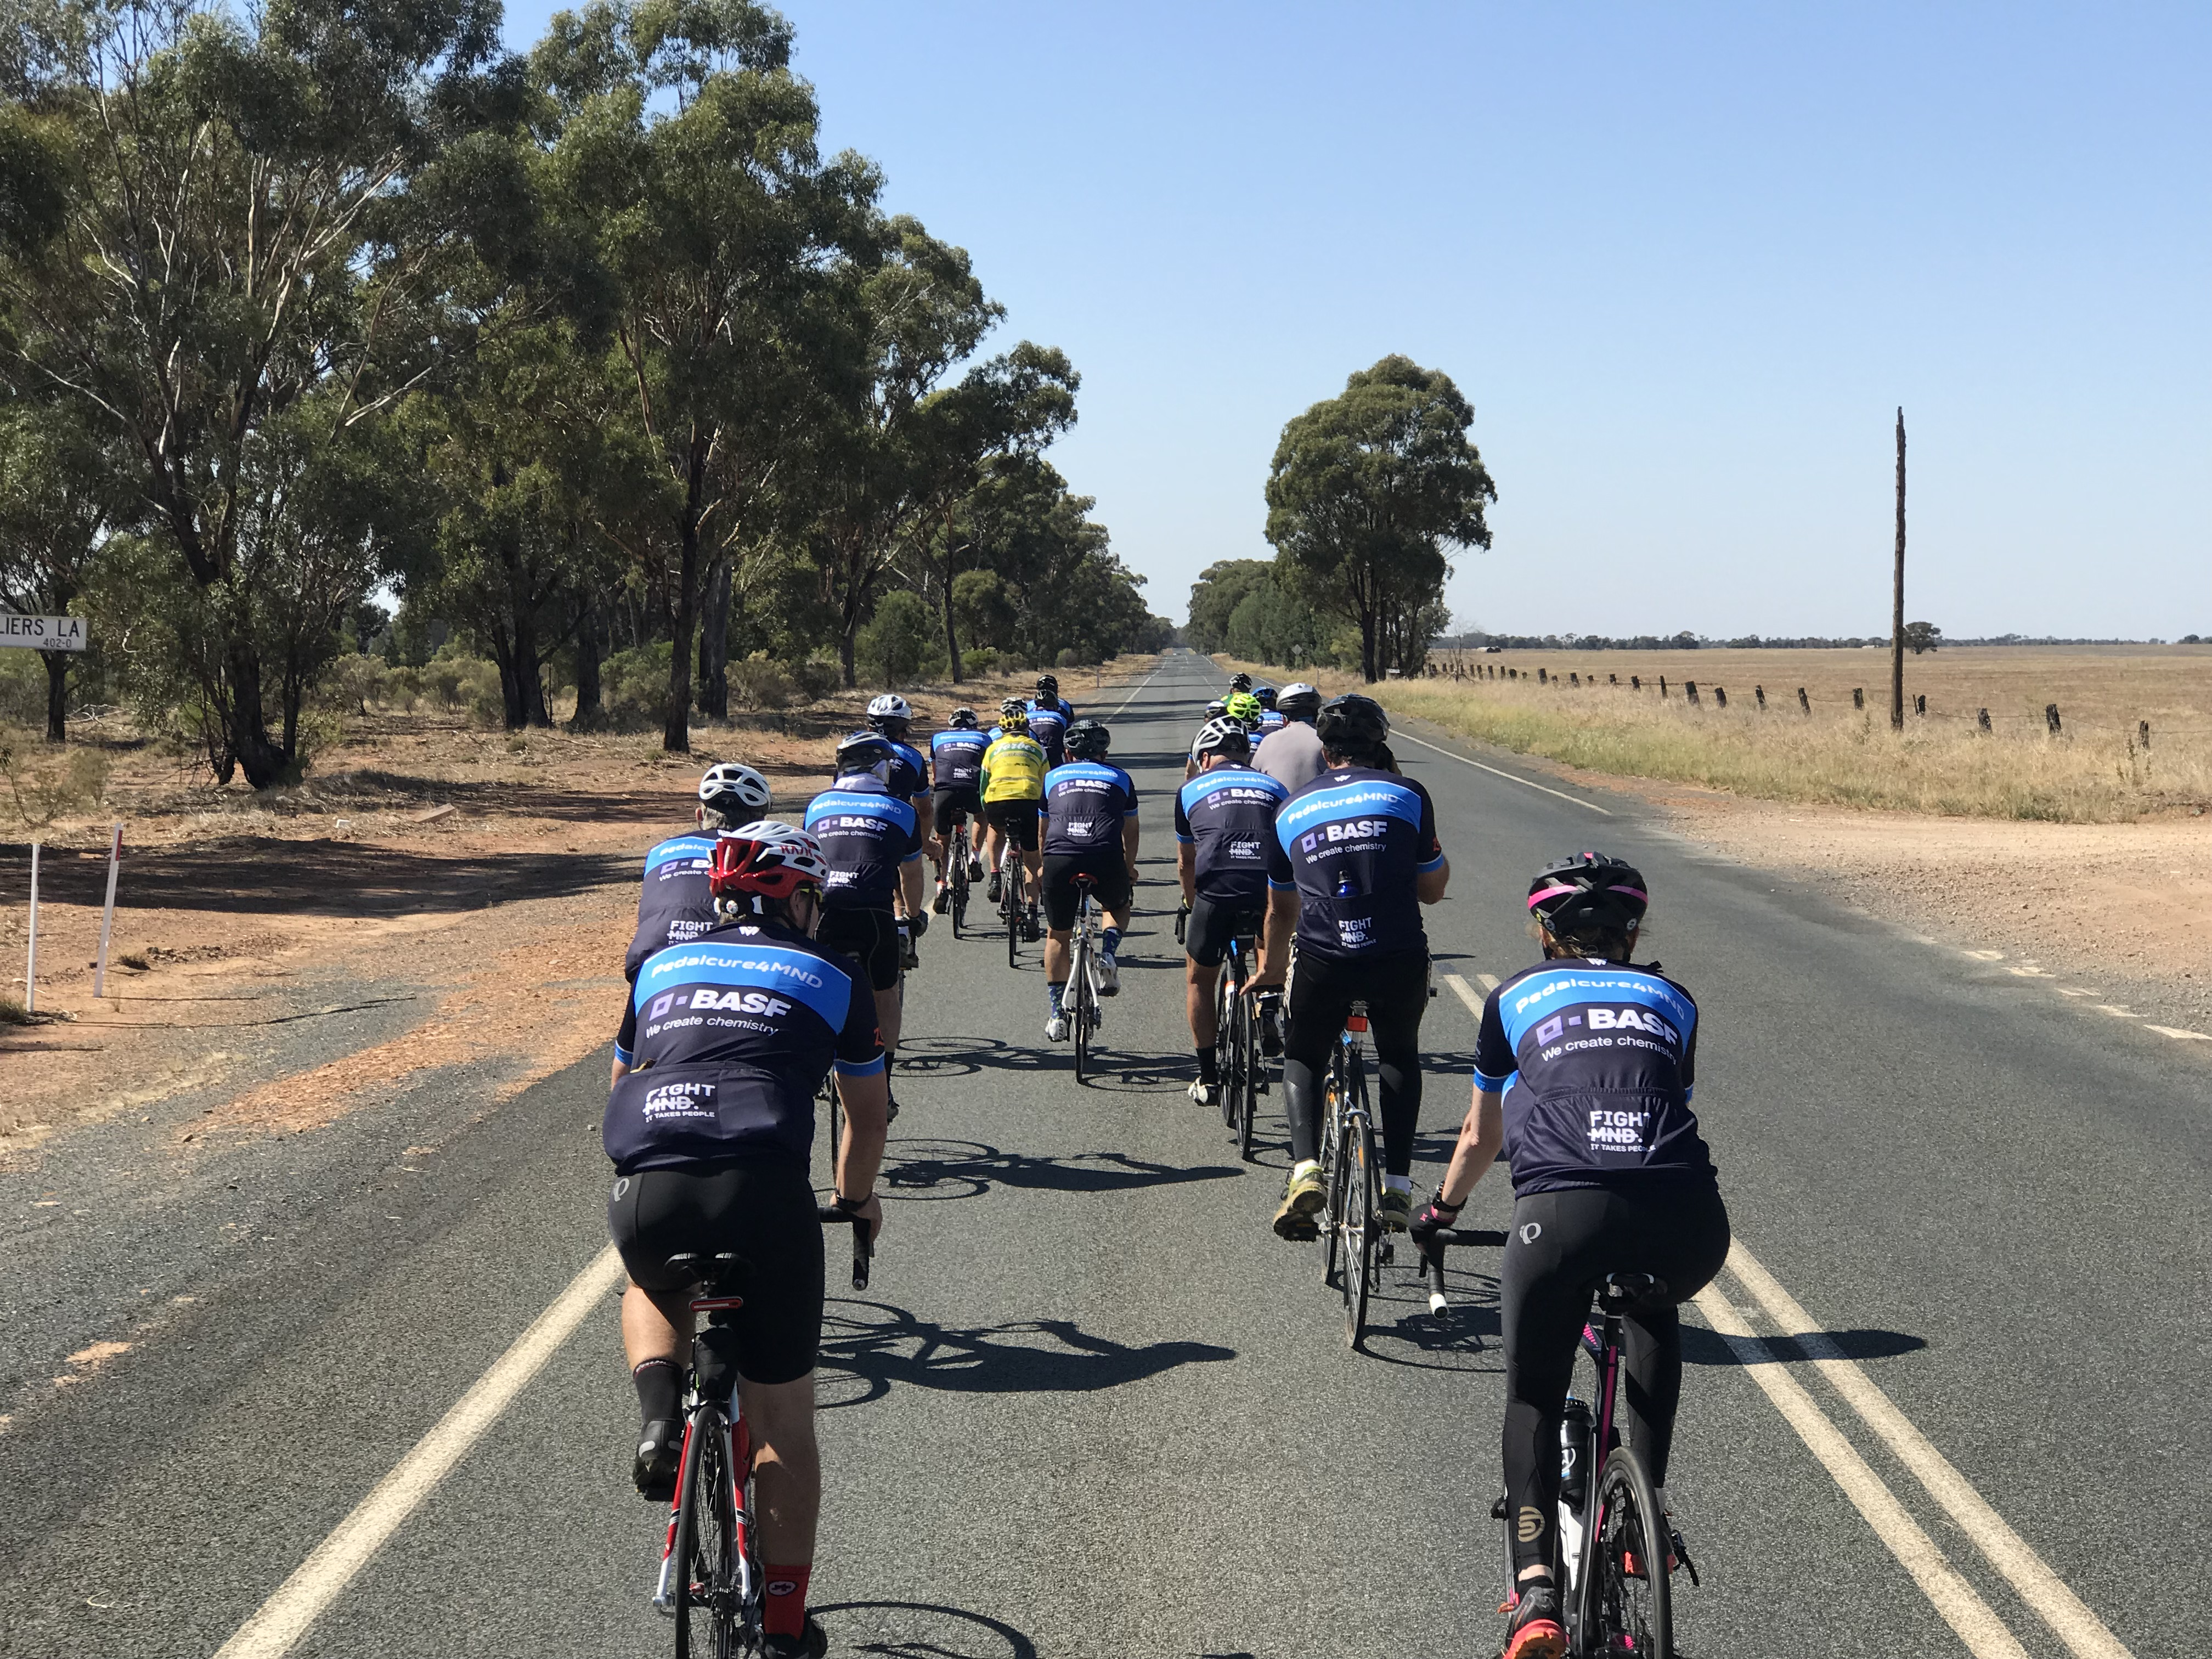 Day one of Pedalcure 4 MND from Ungarie to Ariah Park